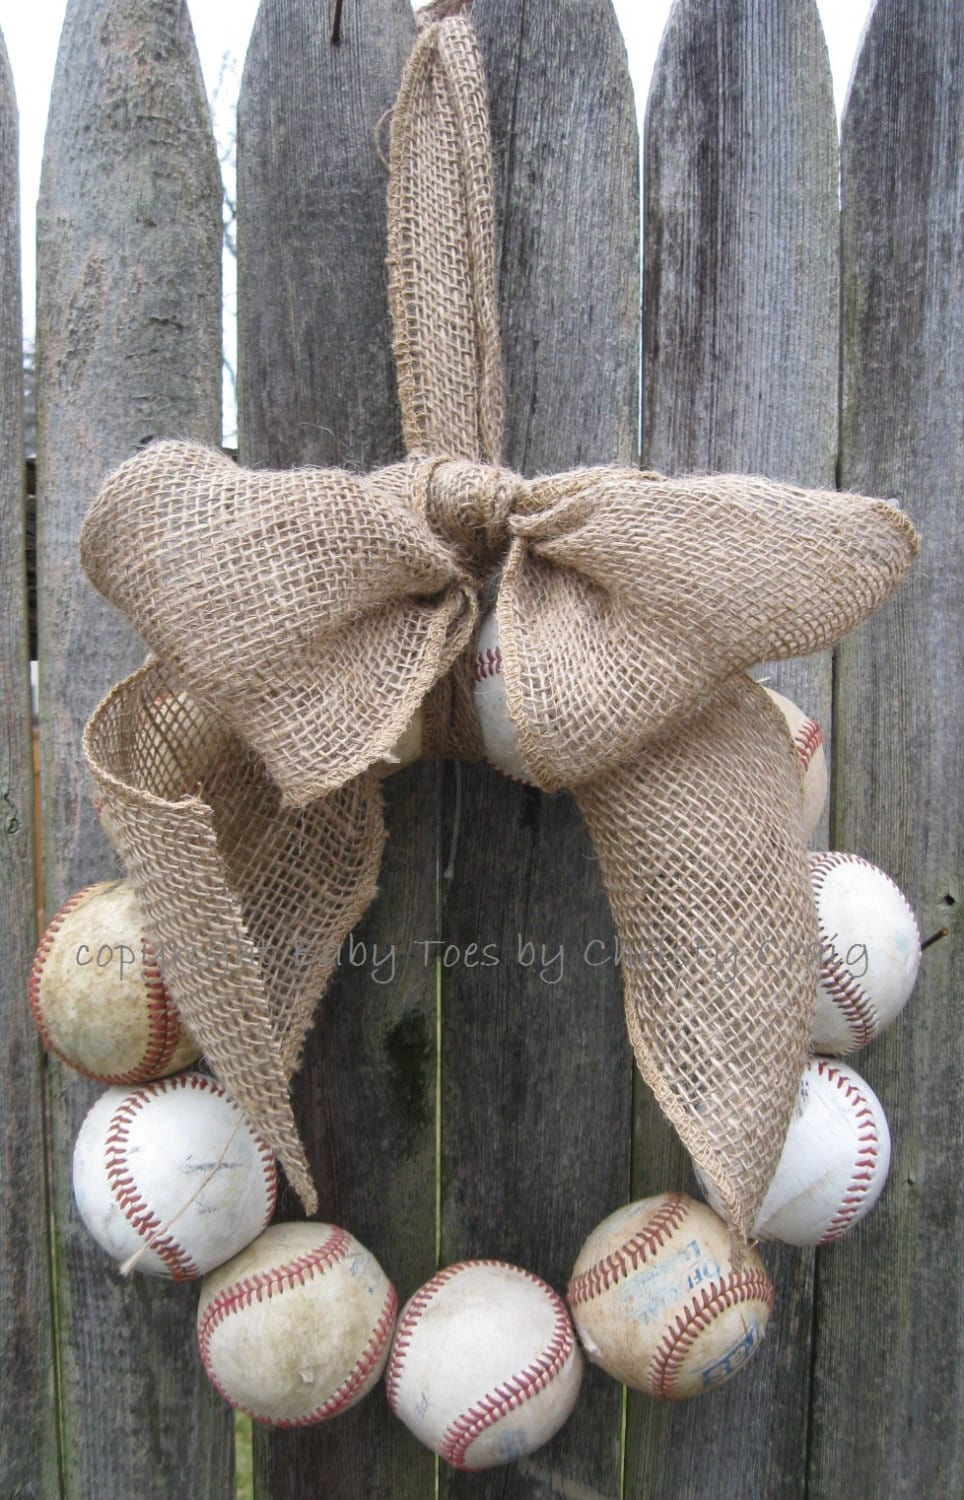 Burlap Baseball Love Wreath - 1BabyToes1